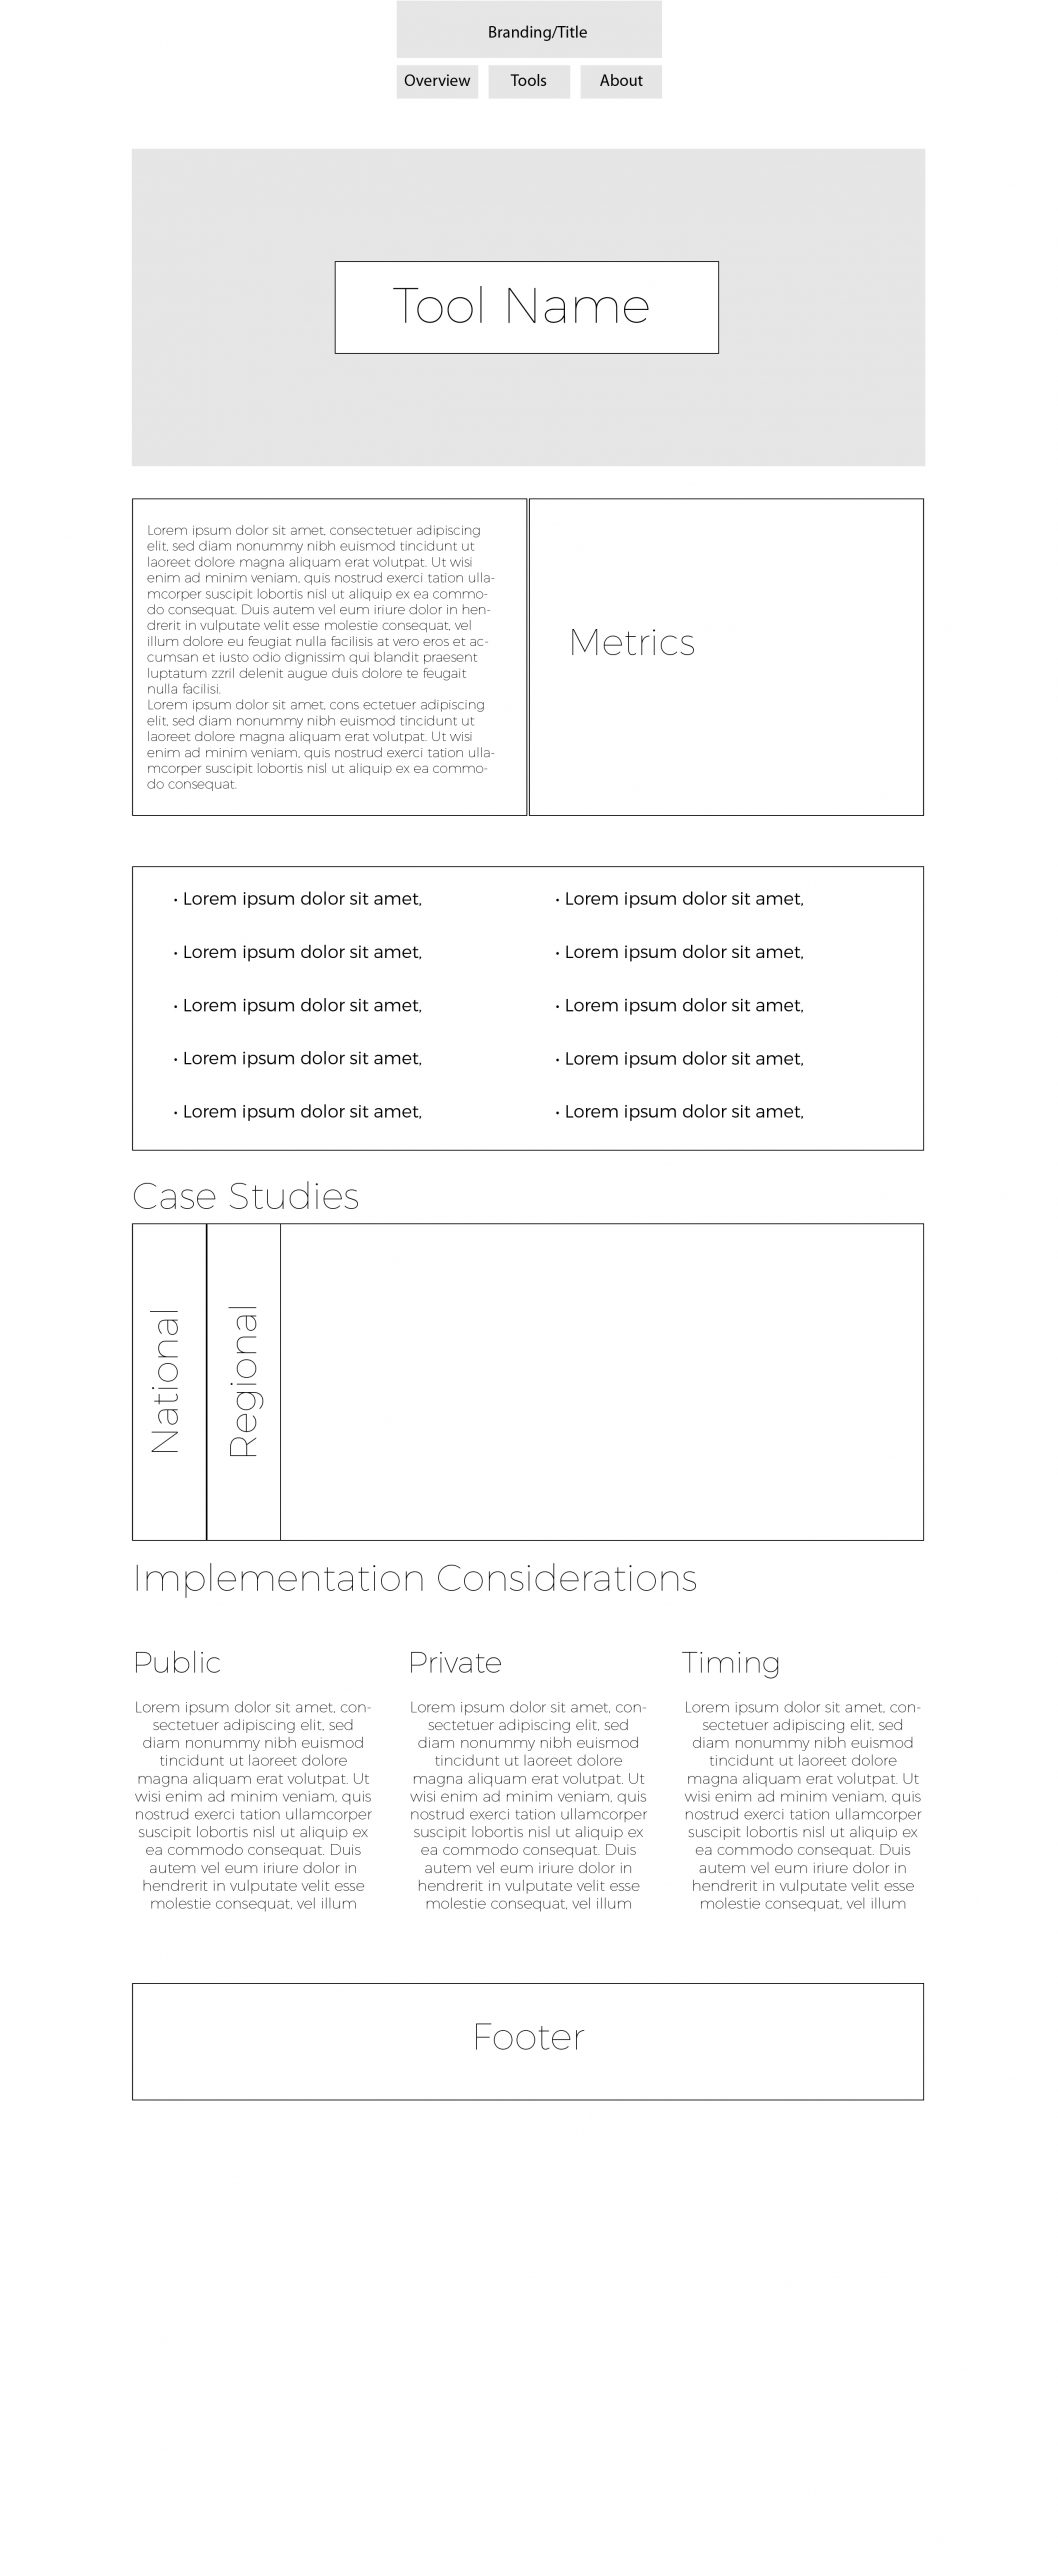 Wireframe for tool detail page